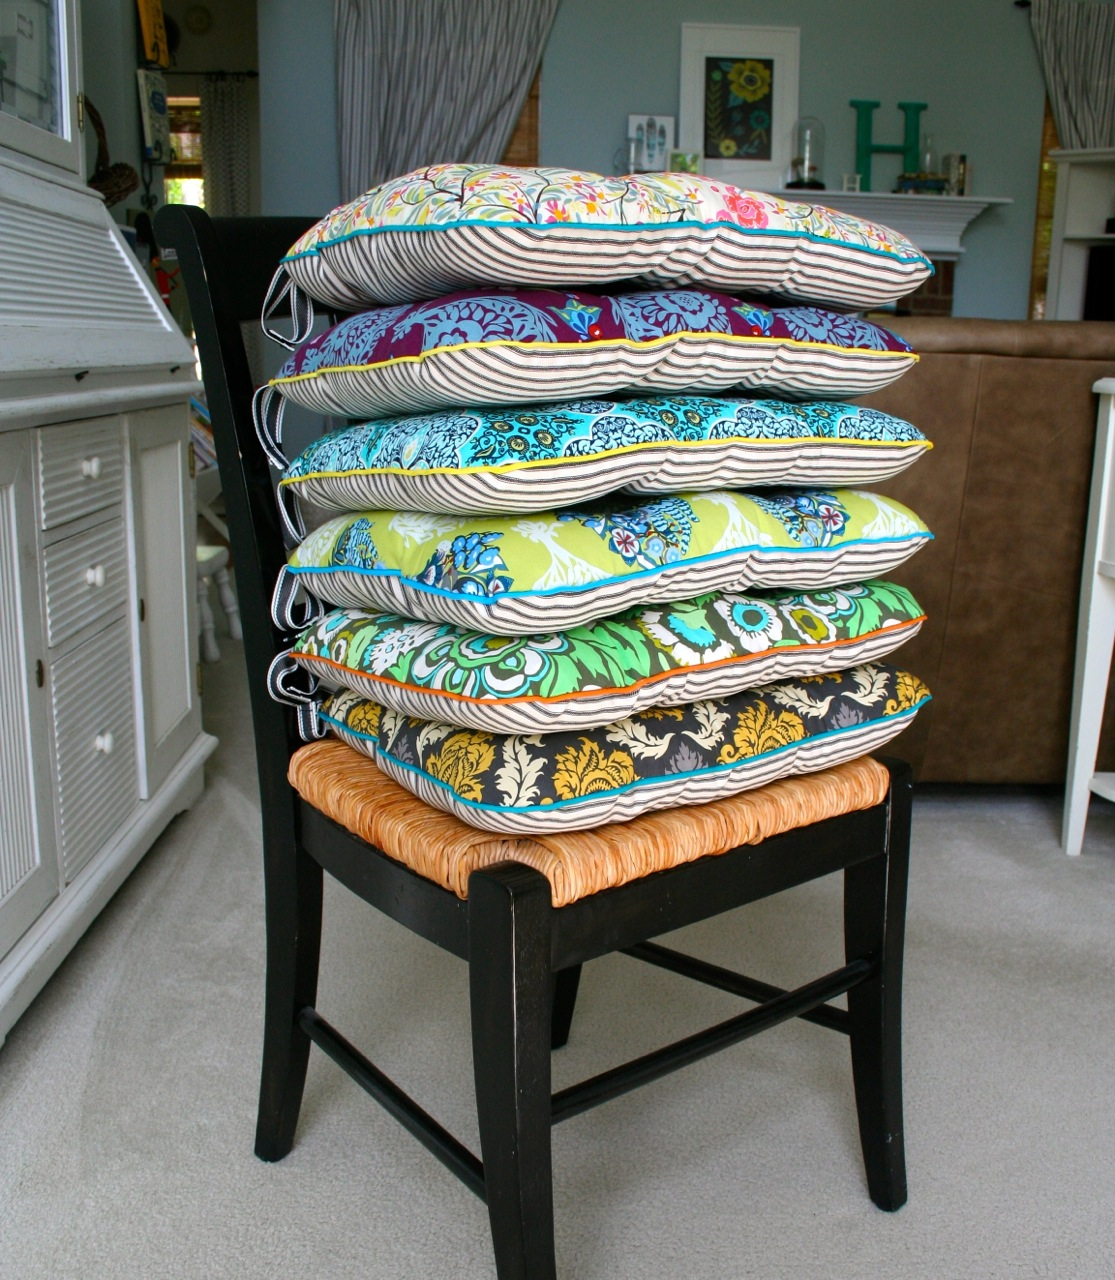 Kitchen Appliances Tips And Review & Making Chair Cushions Kitchen - Kitchen Appliances Tips And ...